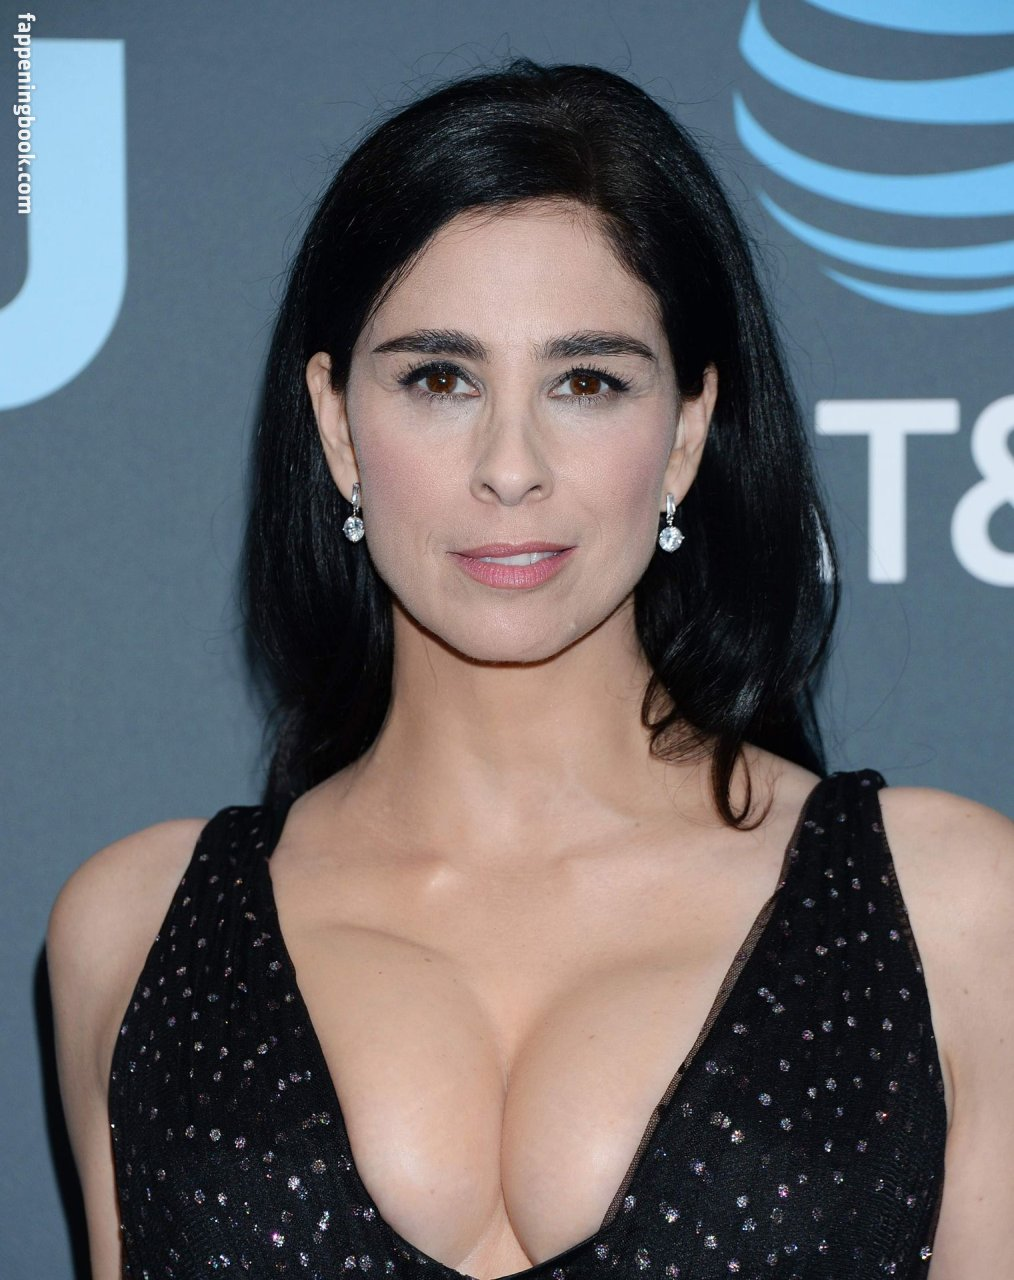 Sex Sarah Silverman Nude Picws Pictures